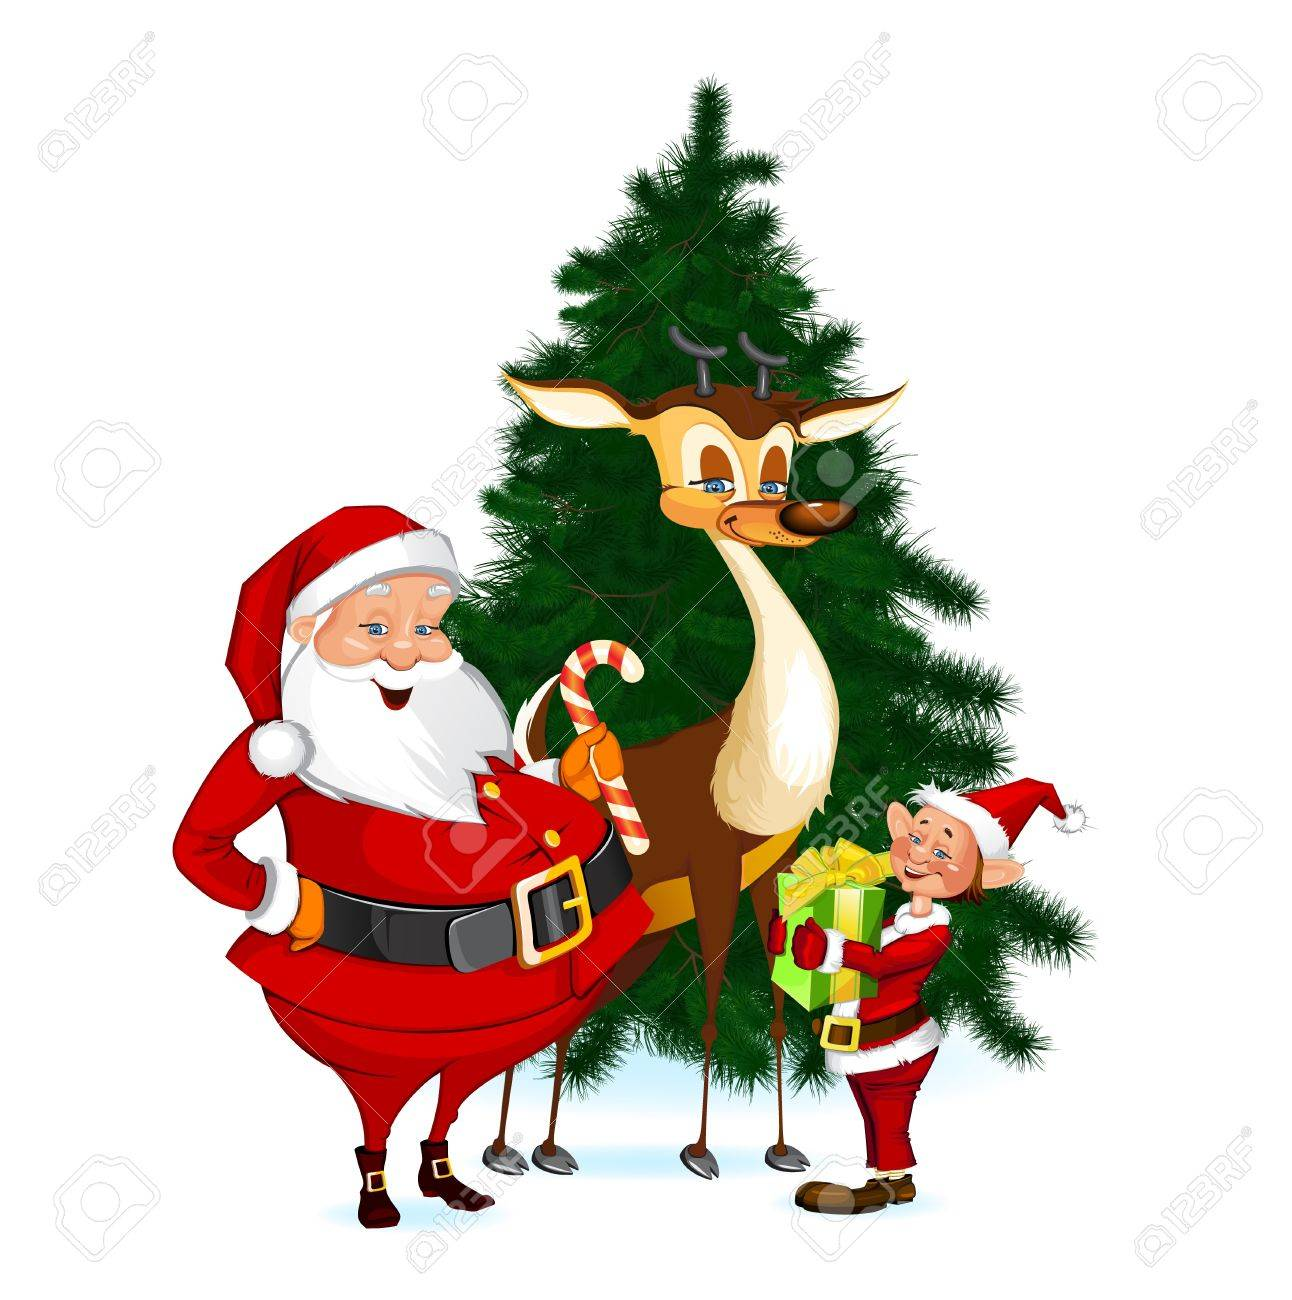 Santa Claus, Reindeer and Elf Stock Vector - 16219127